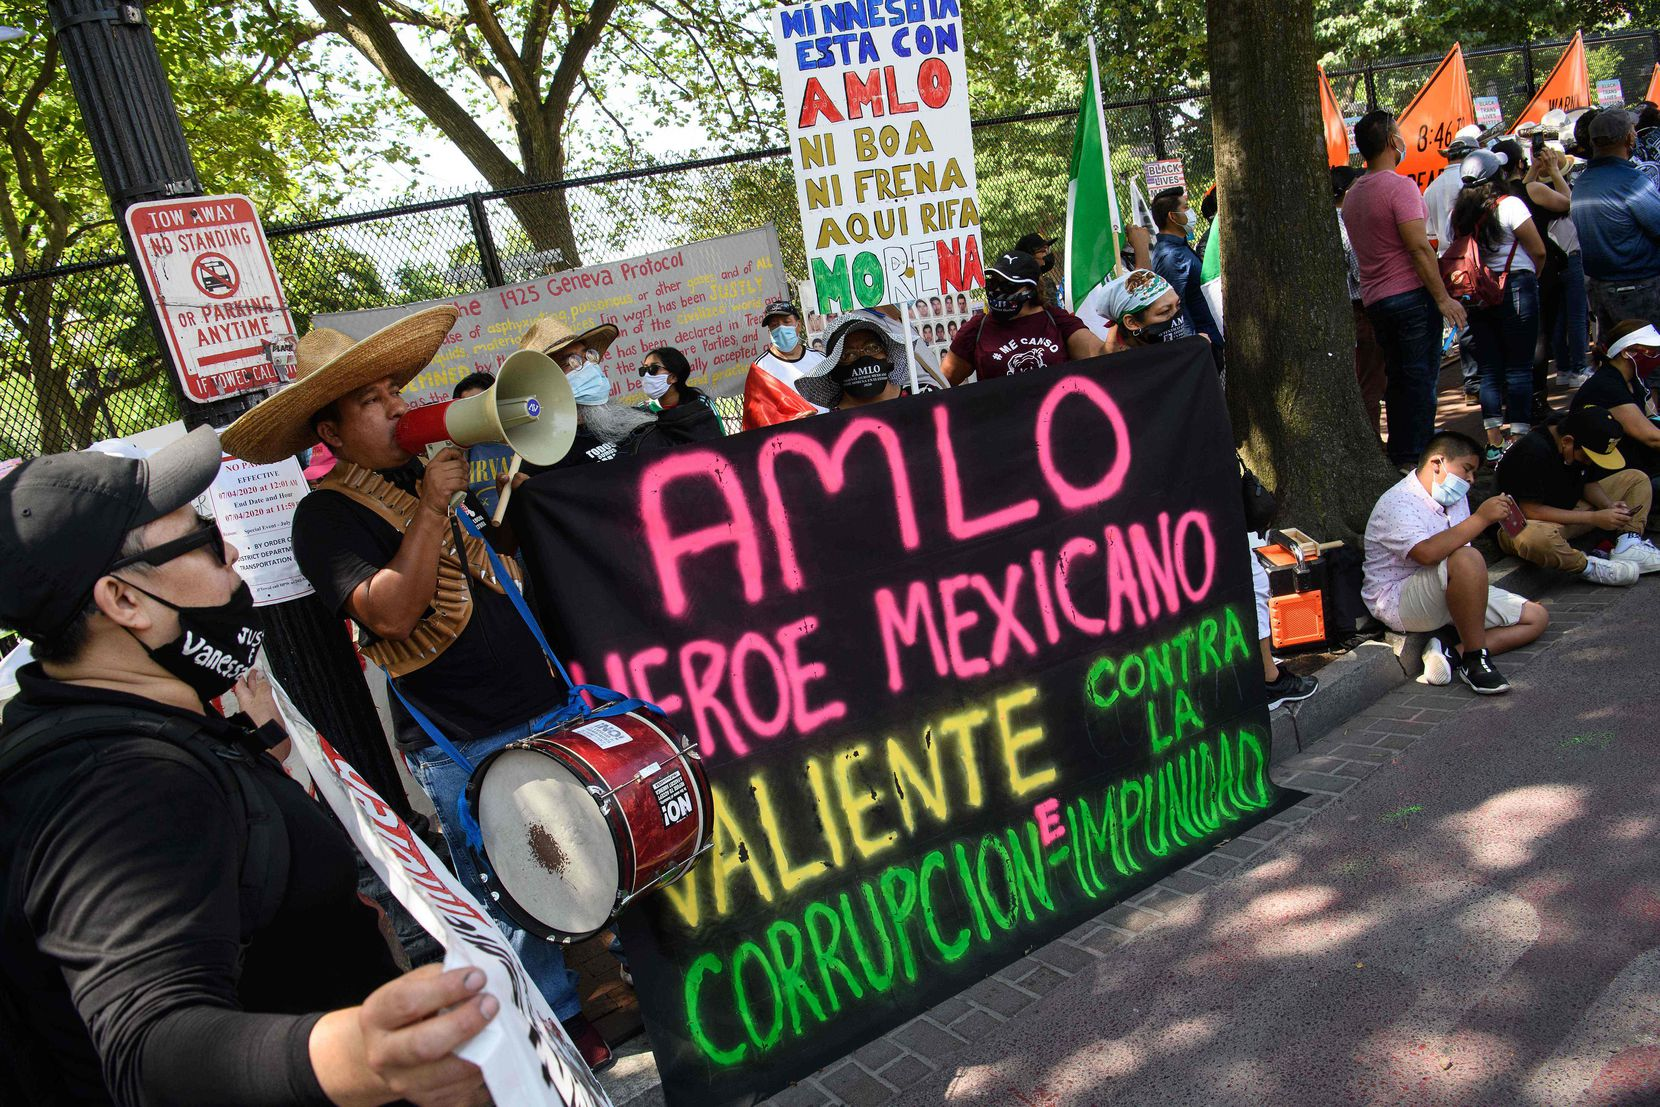 Supporters of Mexican President Andres Manuel Lopez Obrador gather near the White House on July 8, 2020 ahead of his meeting with President Donald Trump.